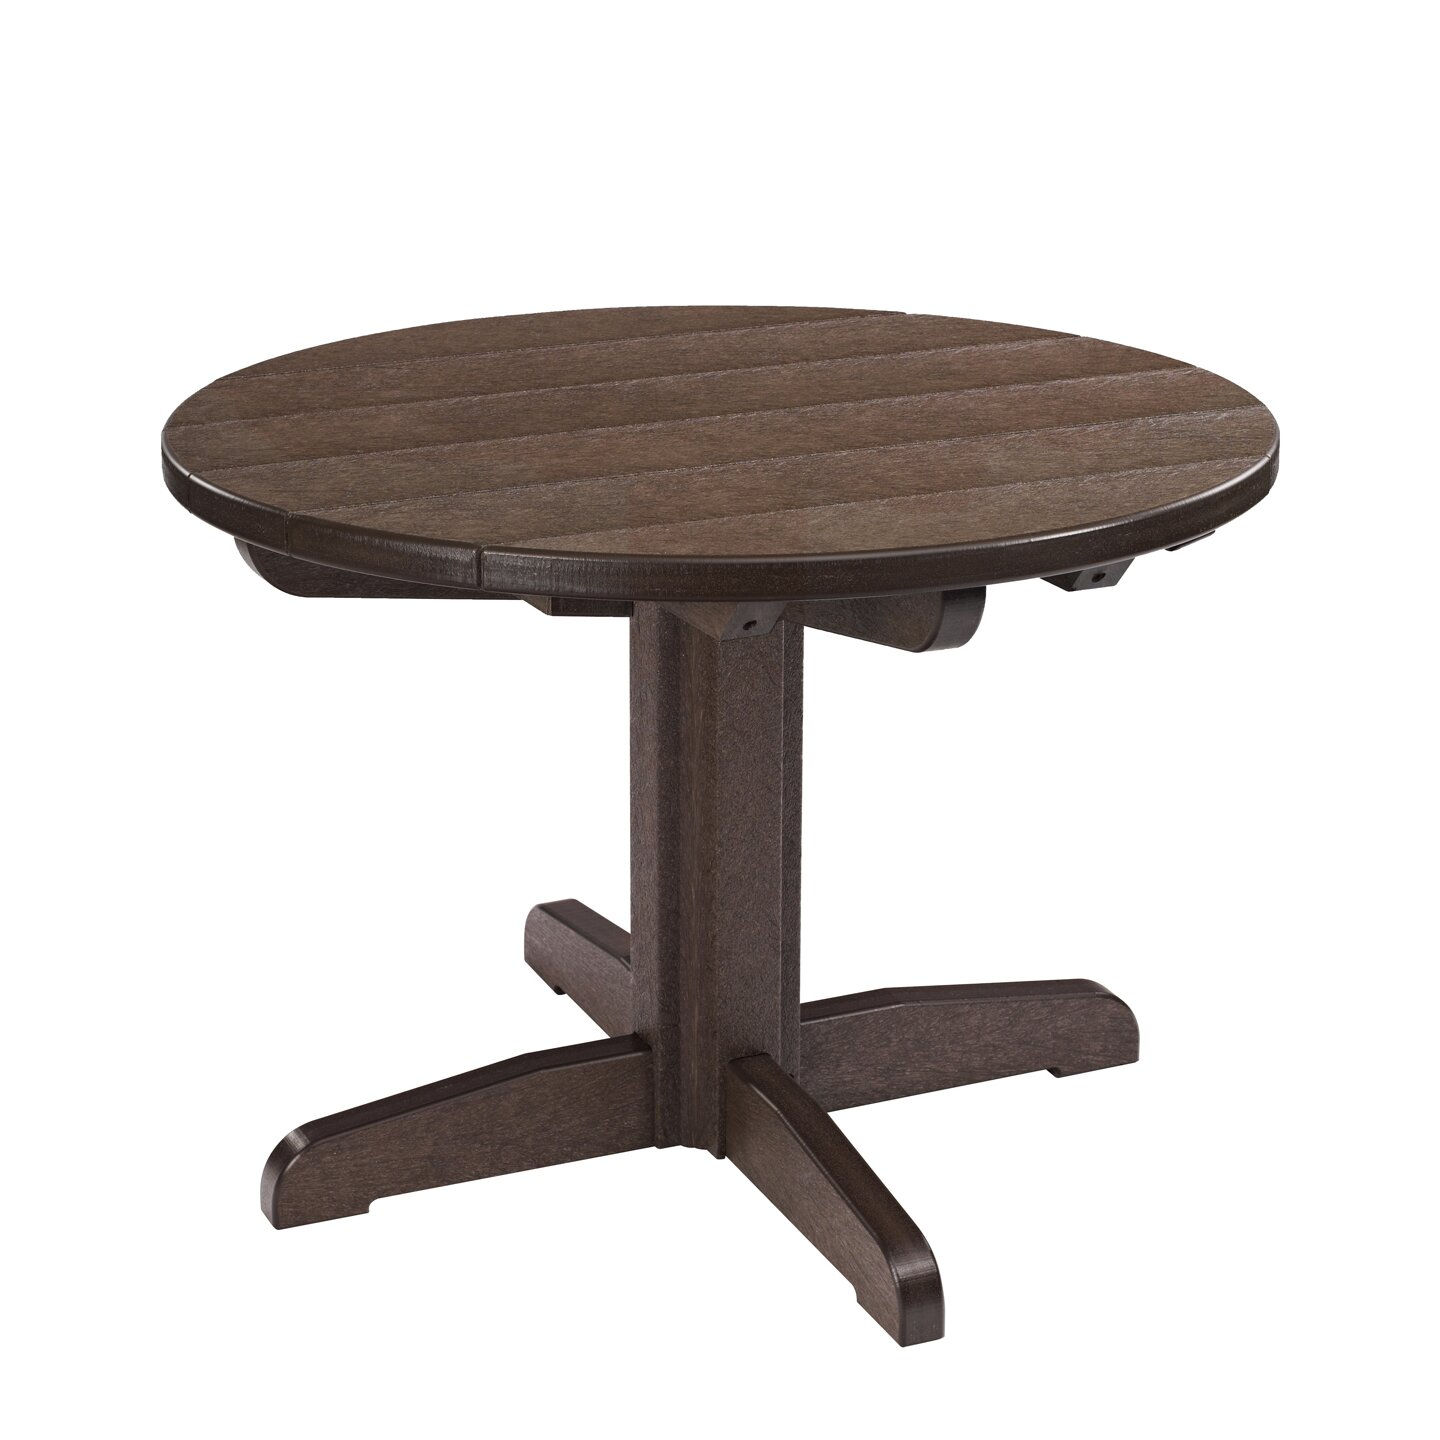 cr plastic products generations round dining table